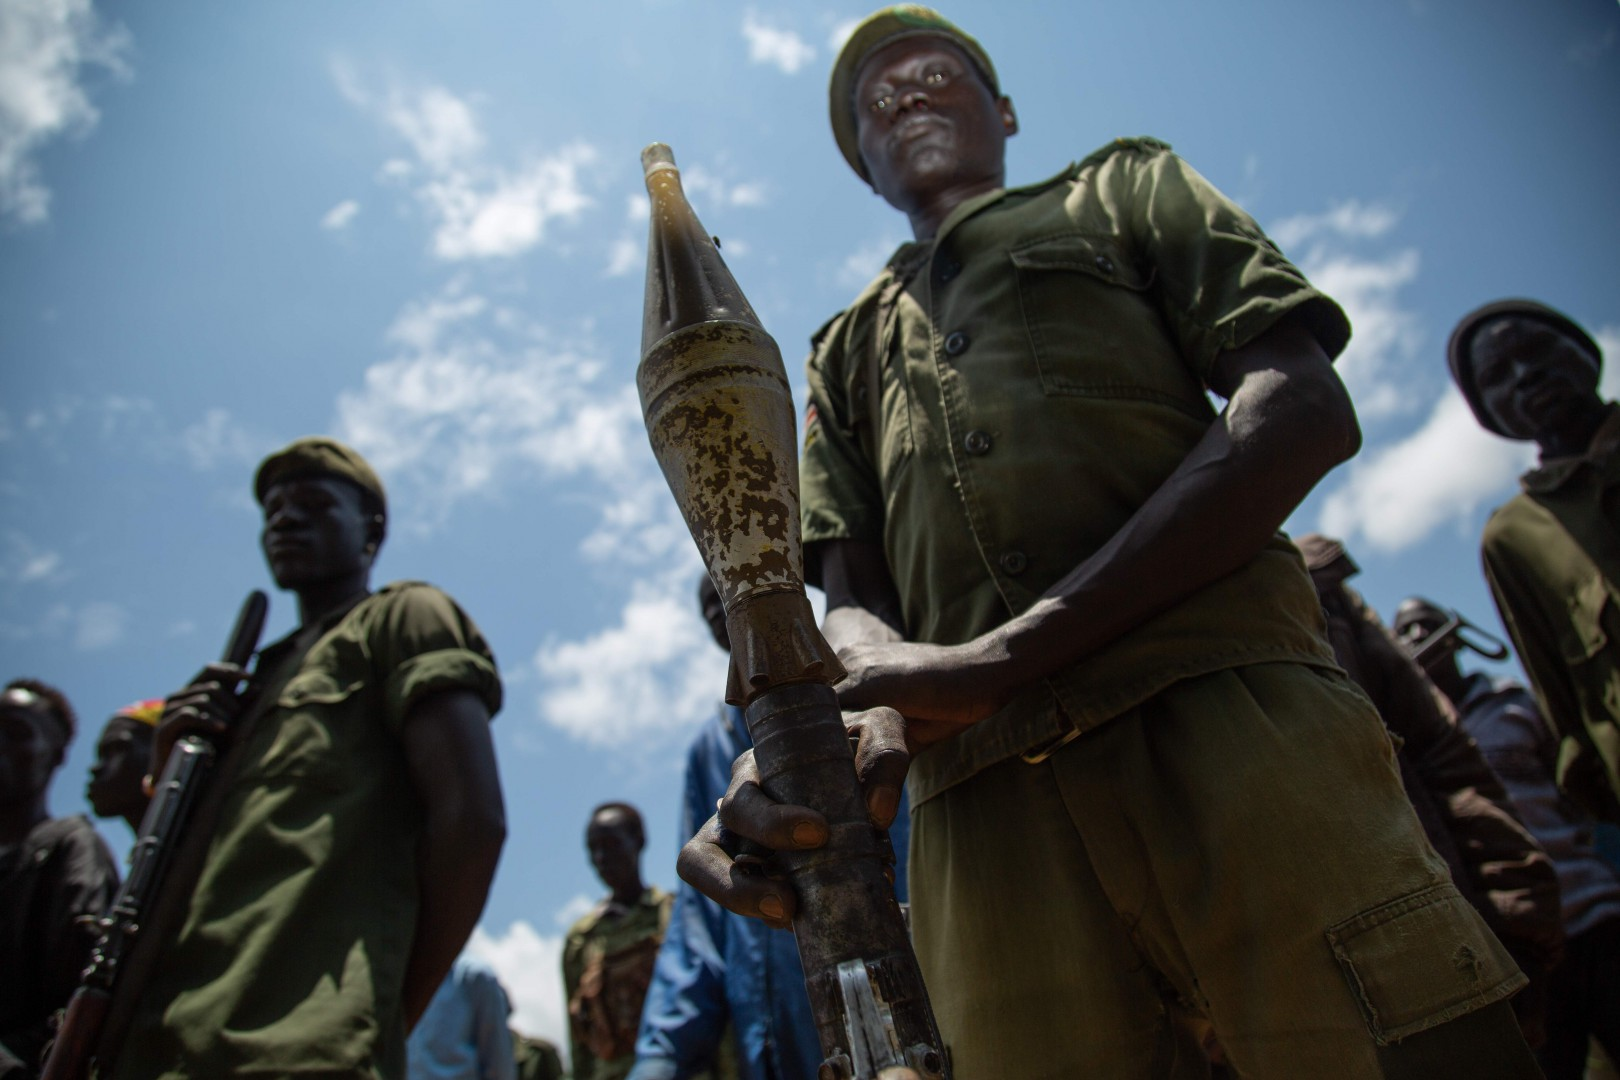 Rebels of the Sudan People's Liberation Movement-in-Opposition (SPLM-IO), a South Sudanese anti-government force, take part in a military exercise at a base in Panyume, on the South Sudanese side of the border with Uganda, on September 22, 2018. - Despite a peace deal being signed by the President of South Sudan, Salva Kiir, and opposition leader Riek Machar on September 12, conflict in Central Equatoria continues as both warring parties fight for control. (Photo by SUMY SADURNI / AFP)